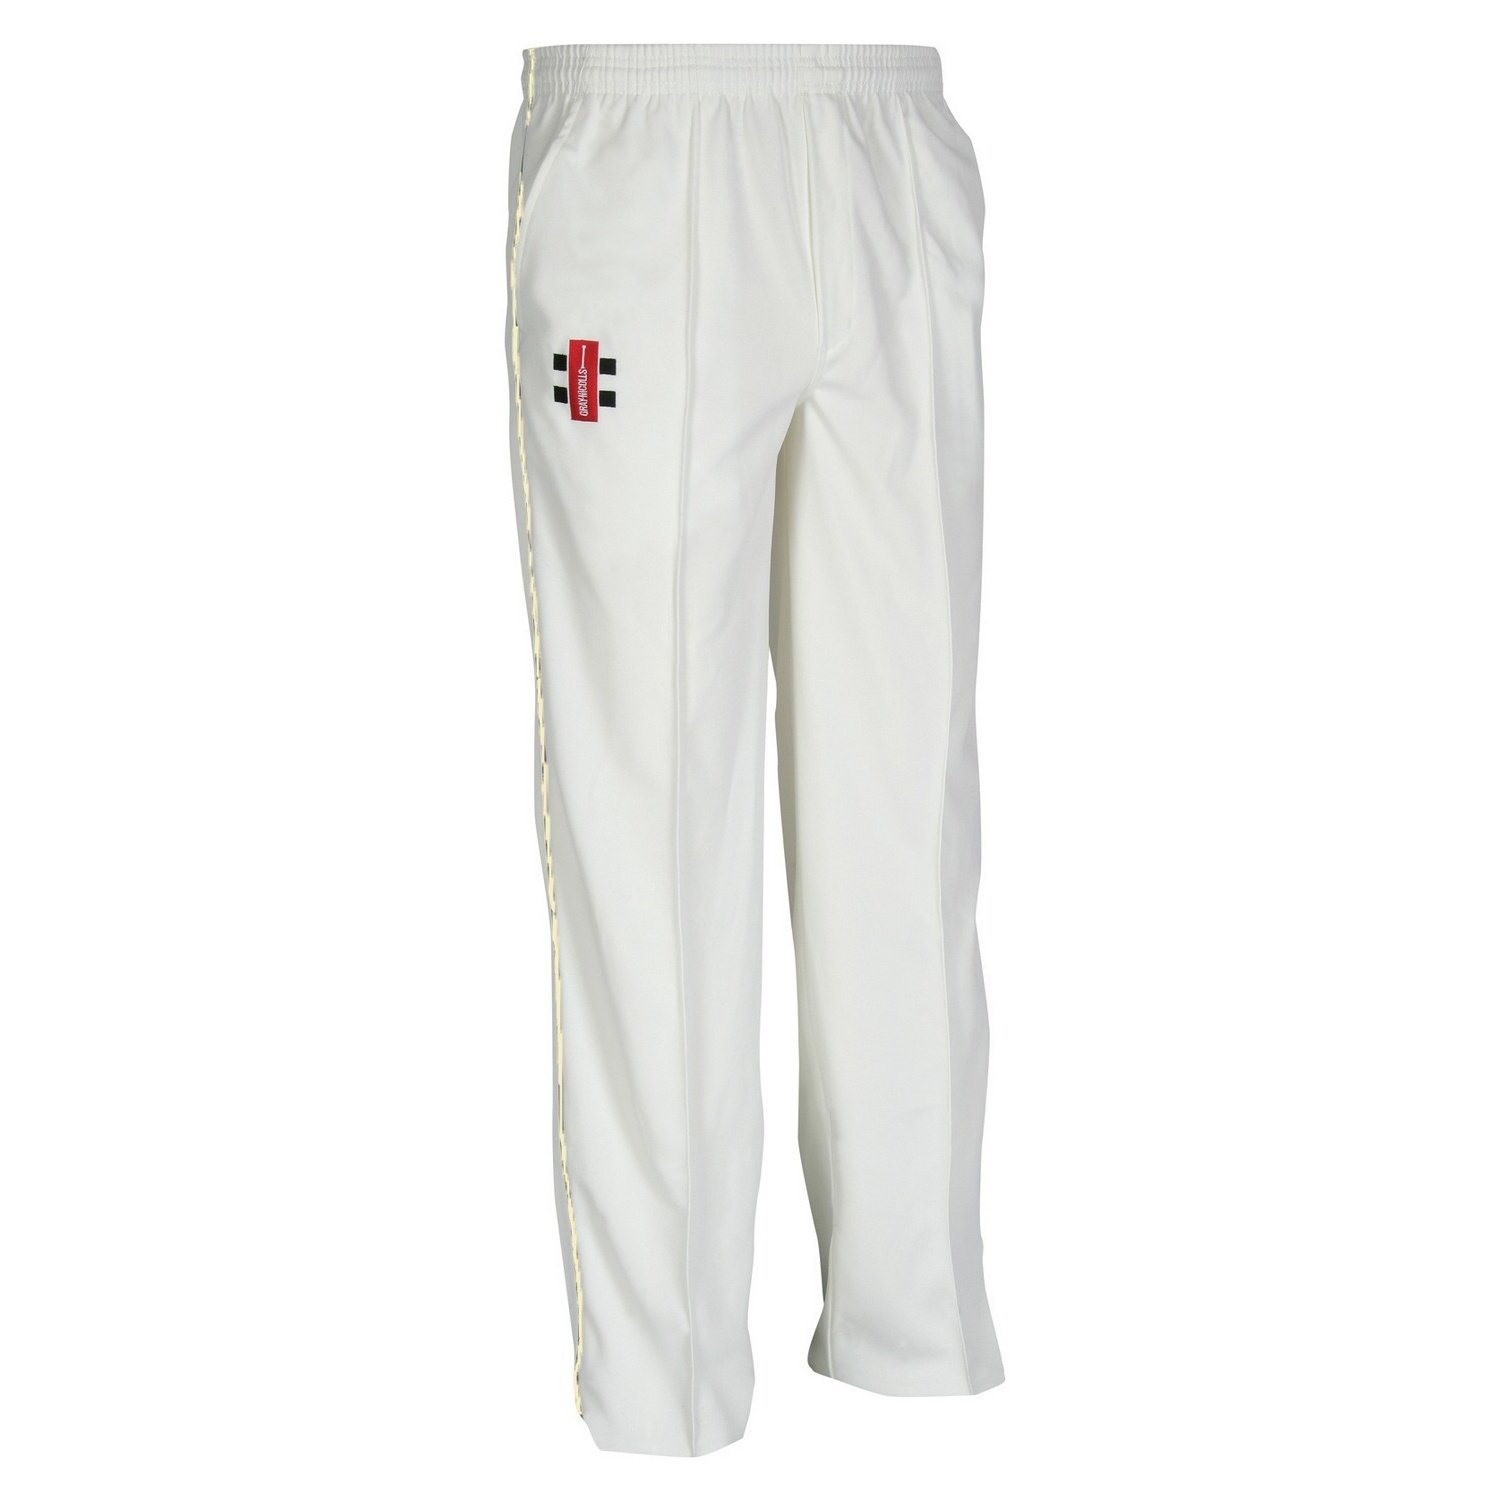 Clothing Cricket Sports Outdoors Acrylick Online Men39s Short Circuit Tshirt Gray Nicolls Mens Matrix Pants Trousers